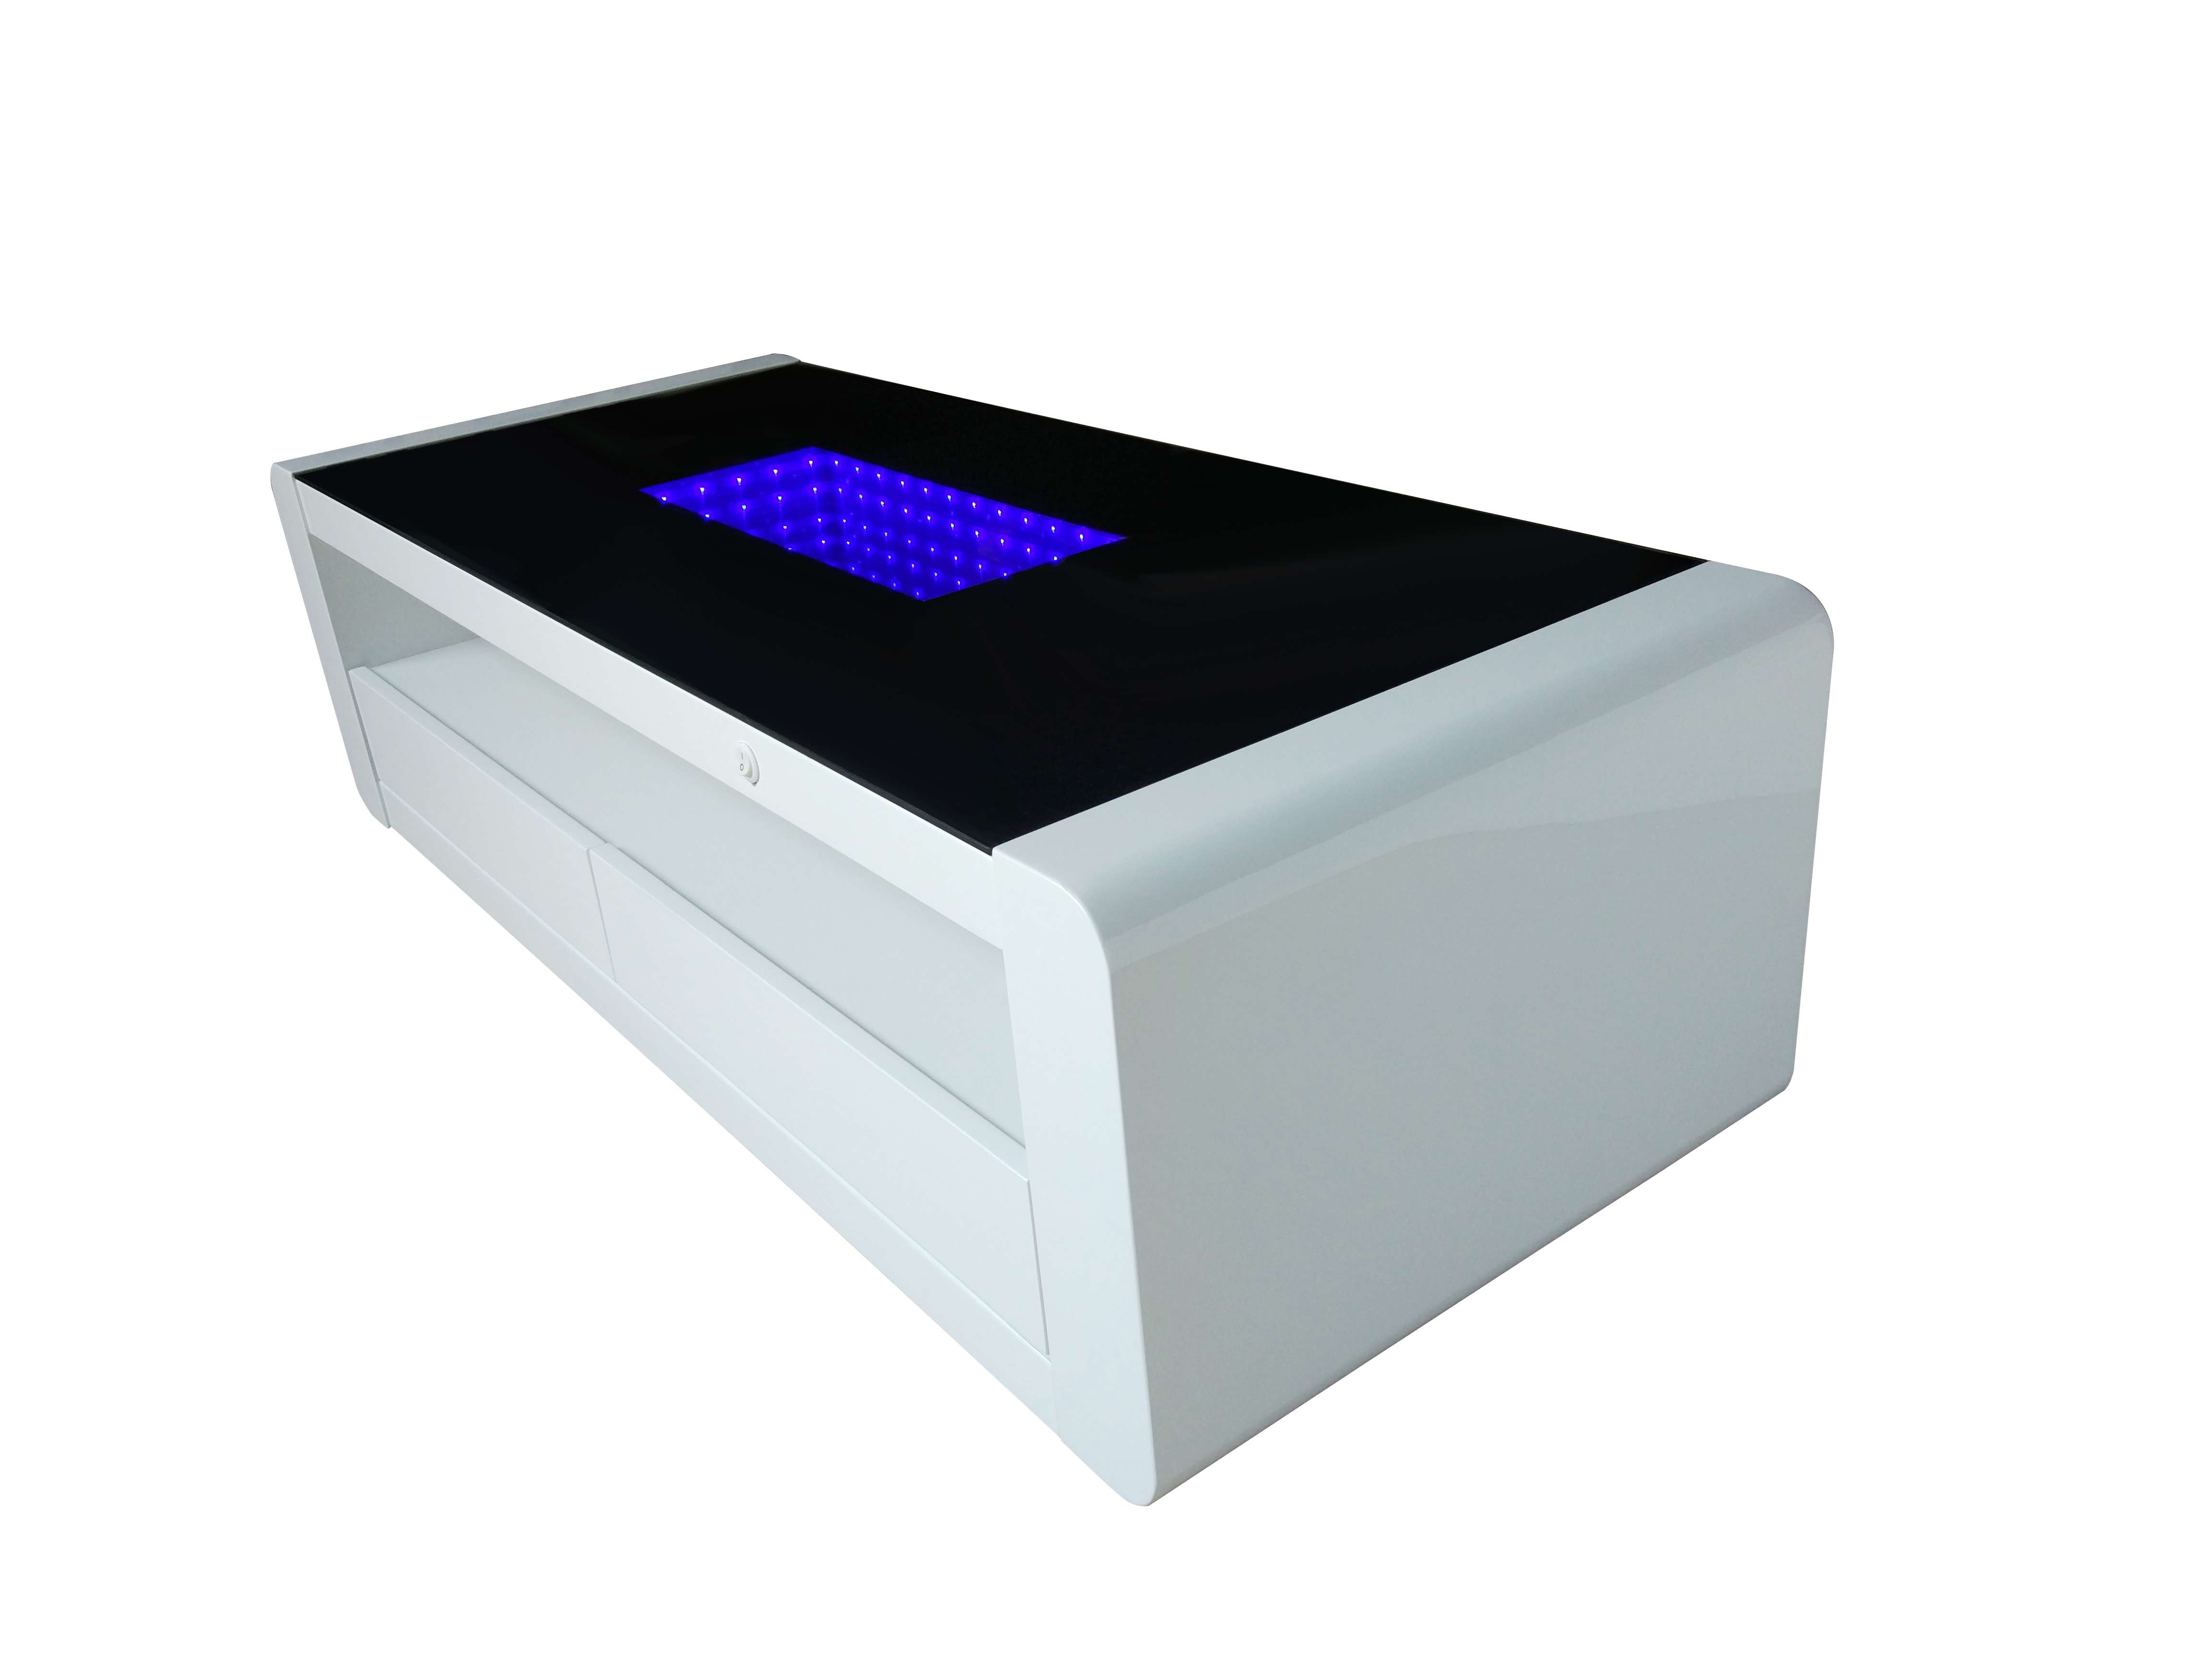 Matrix High Gloss Coffee Table – White & Black Gloss With Blue Led With Best And Newest High Gloss Coffee Tables (View 4 of 20)